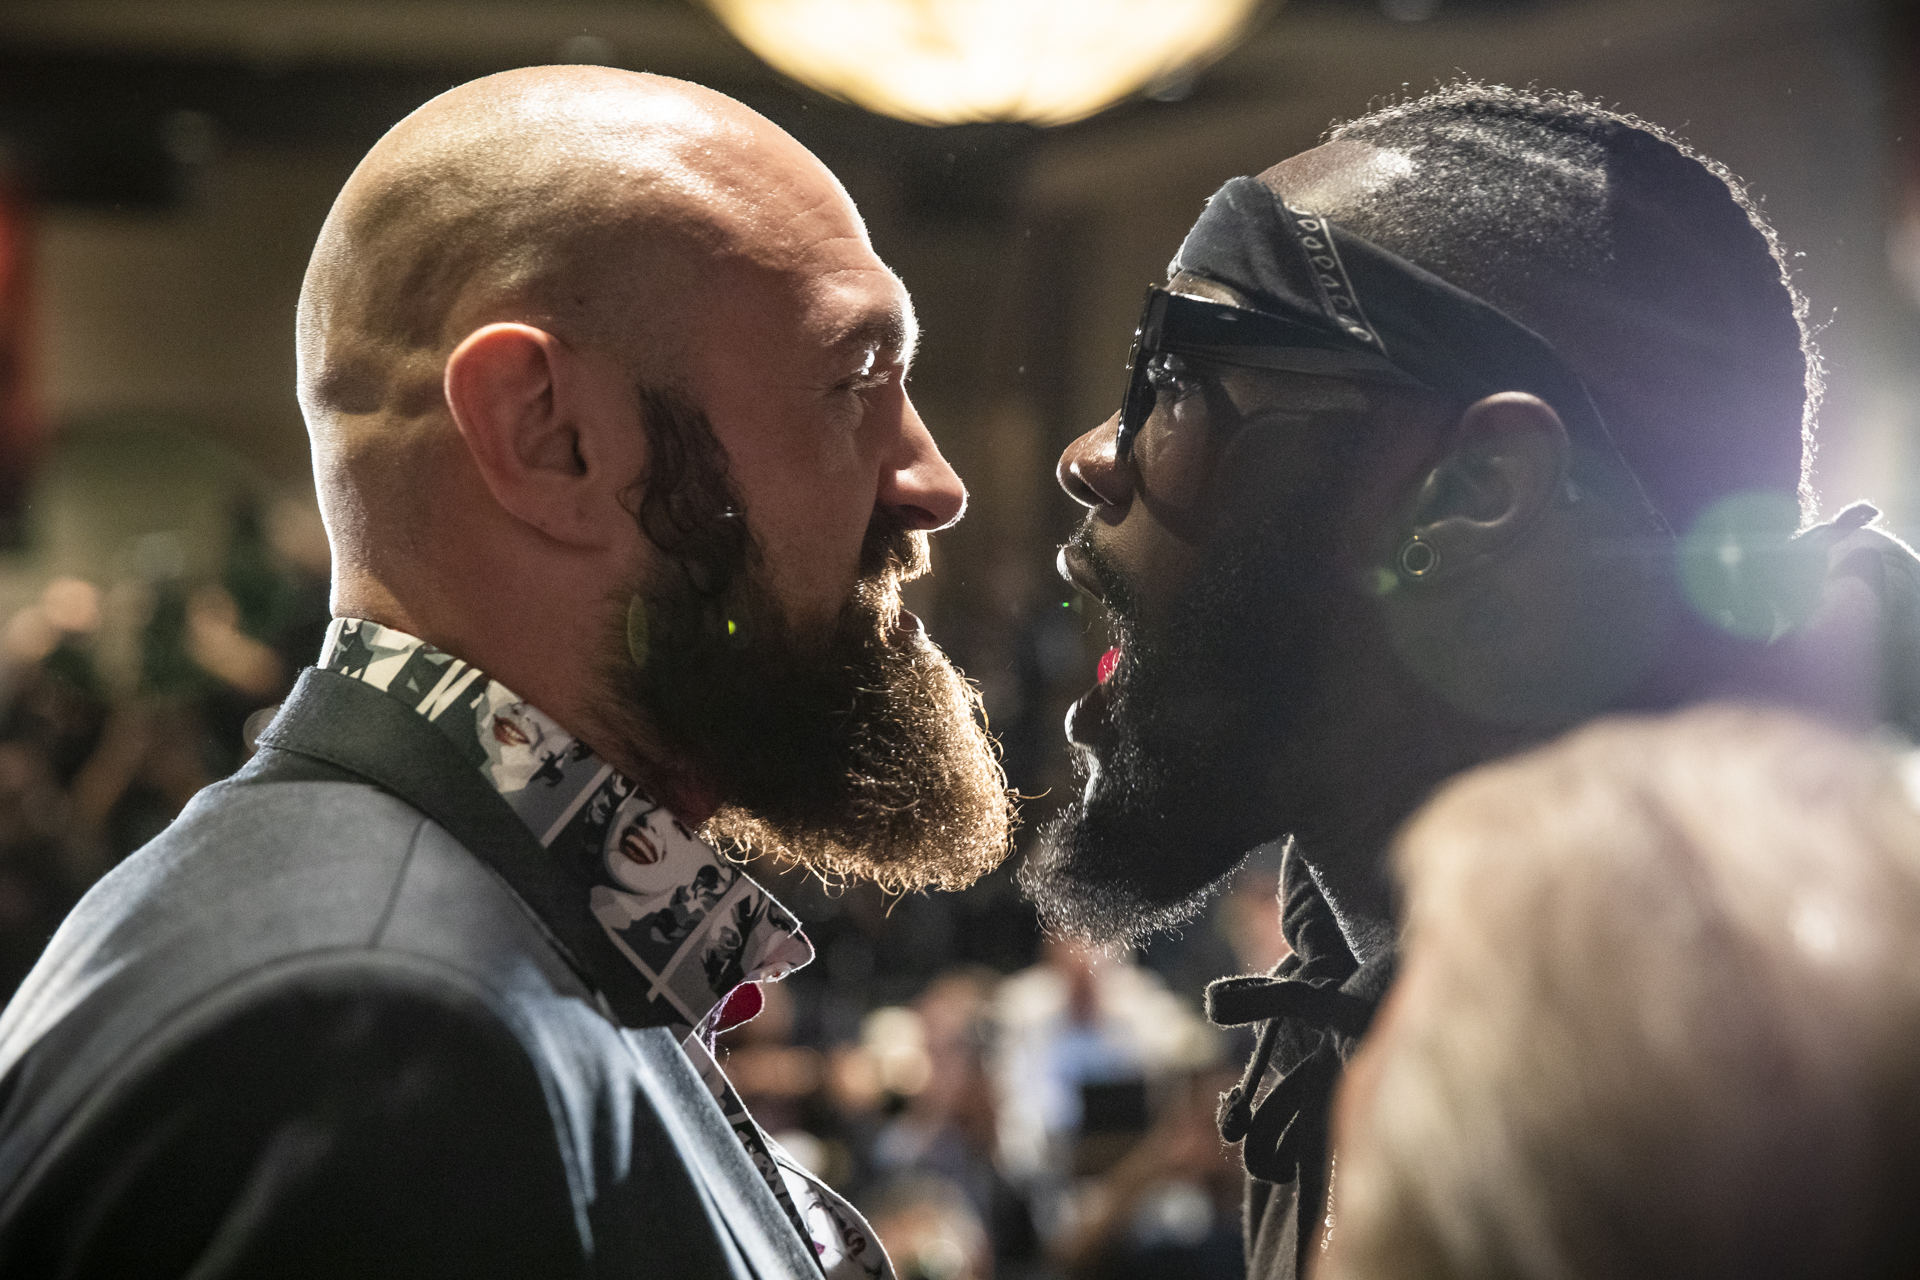 013 Tyson Fury and Deontay Wilder - Deontay Wilder Is Harming His Own Reputation